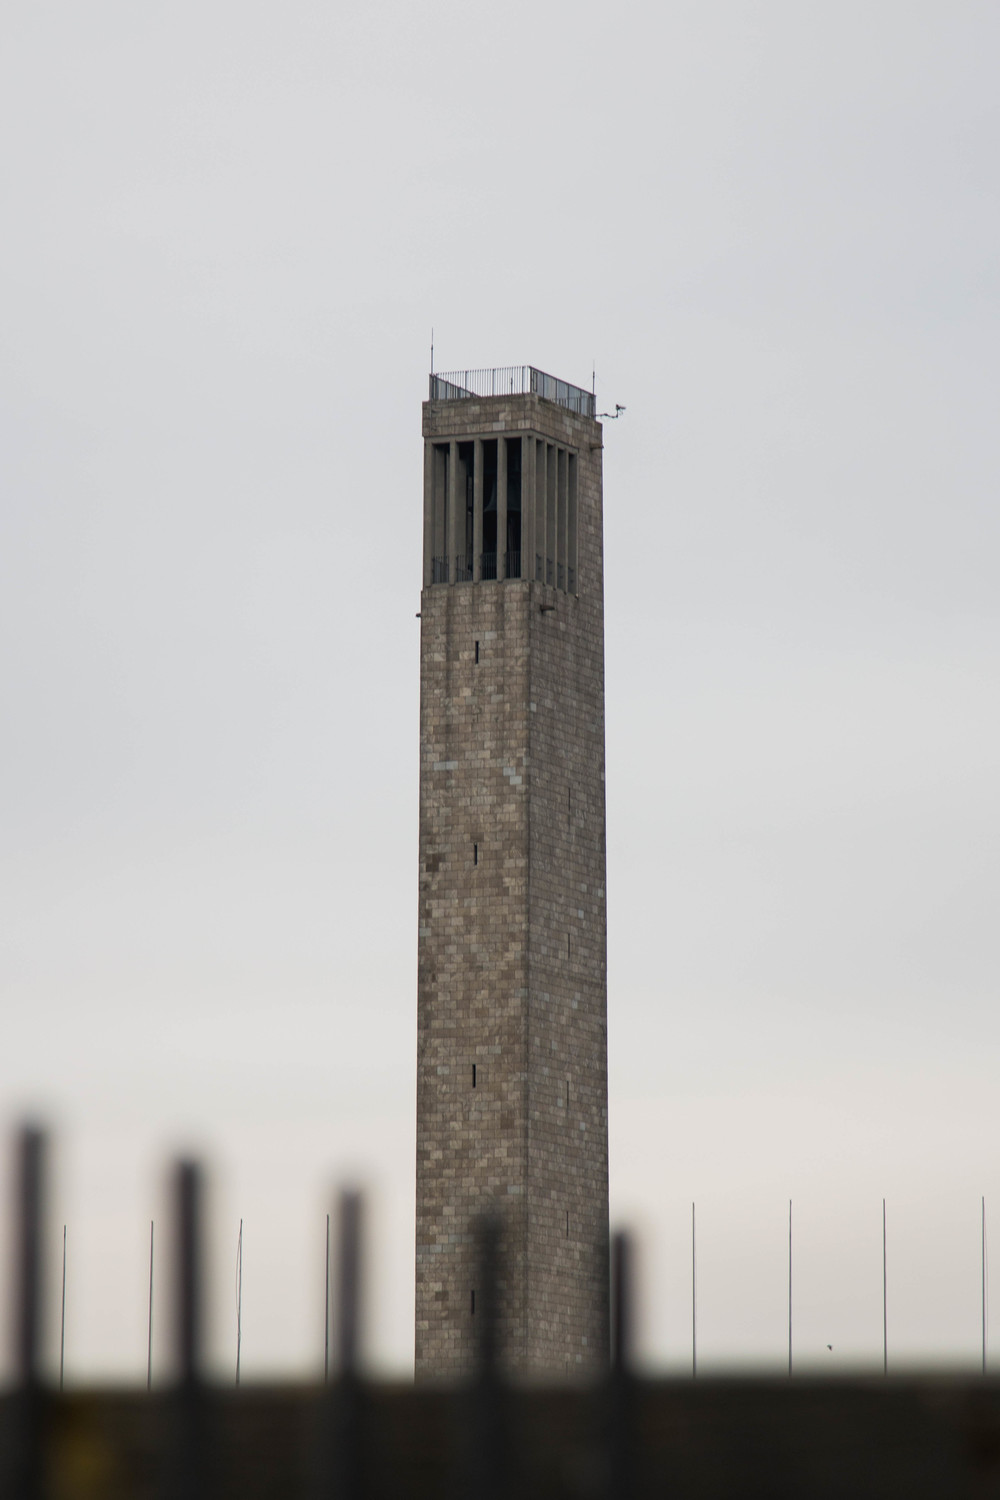 Bell Tower - Berlin Olympic Stadium, Berlin, Germany 04/12/2015